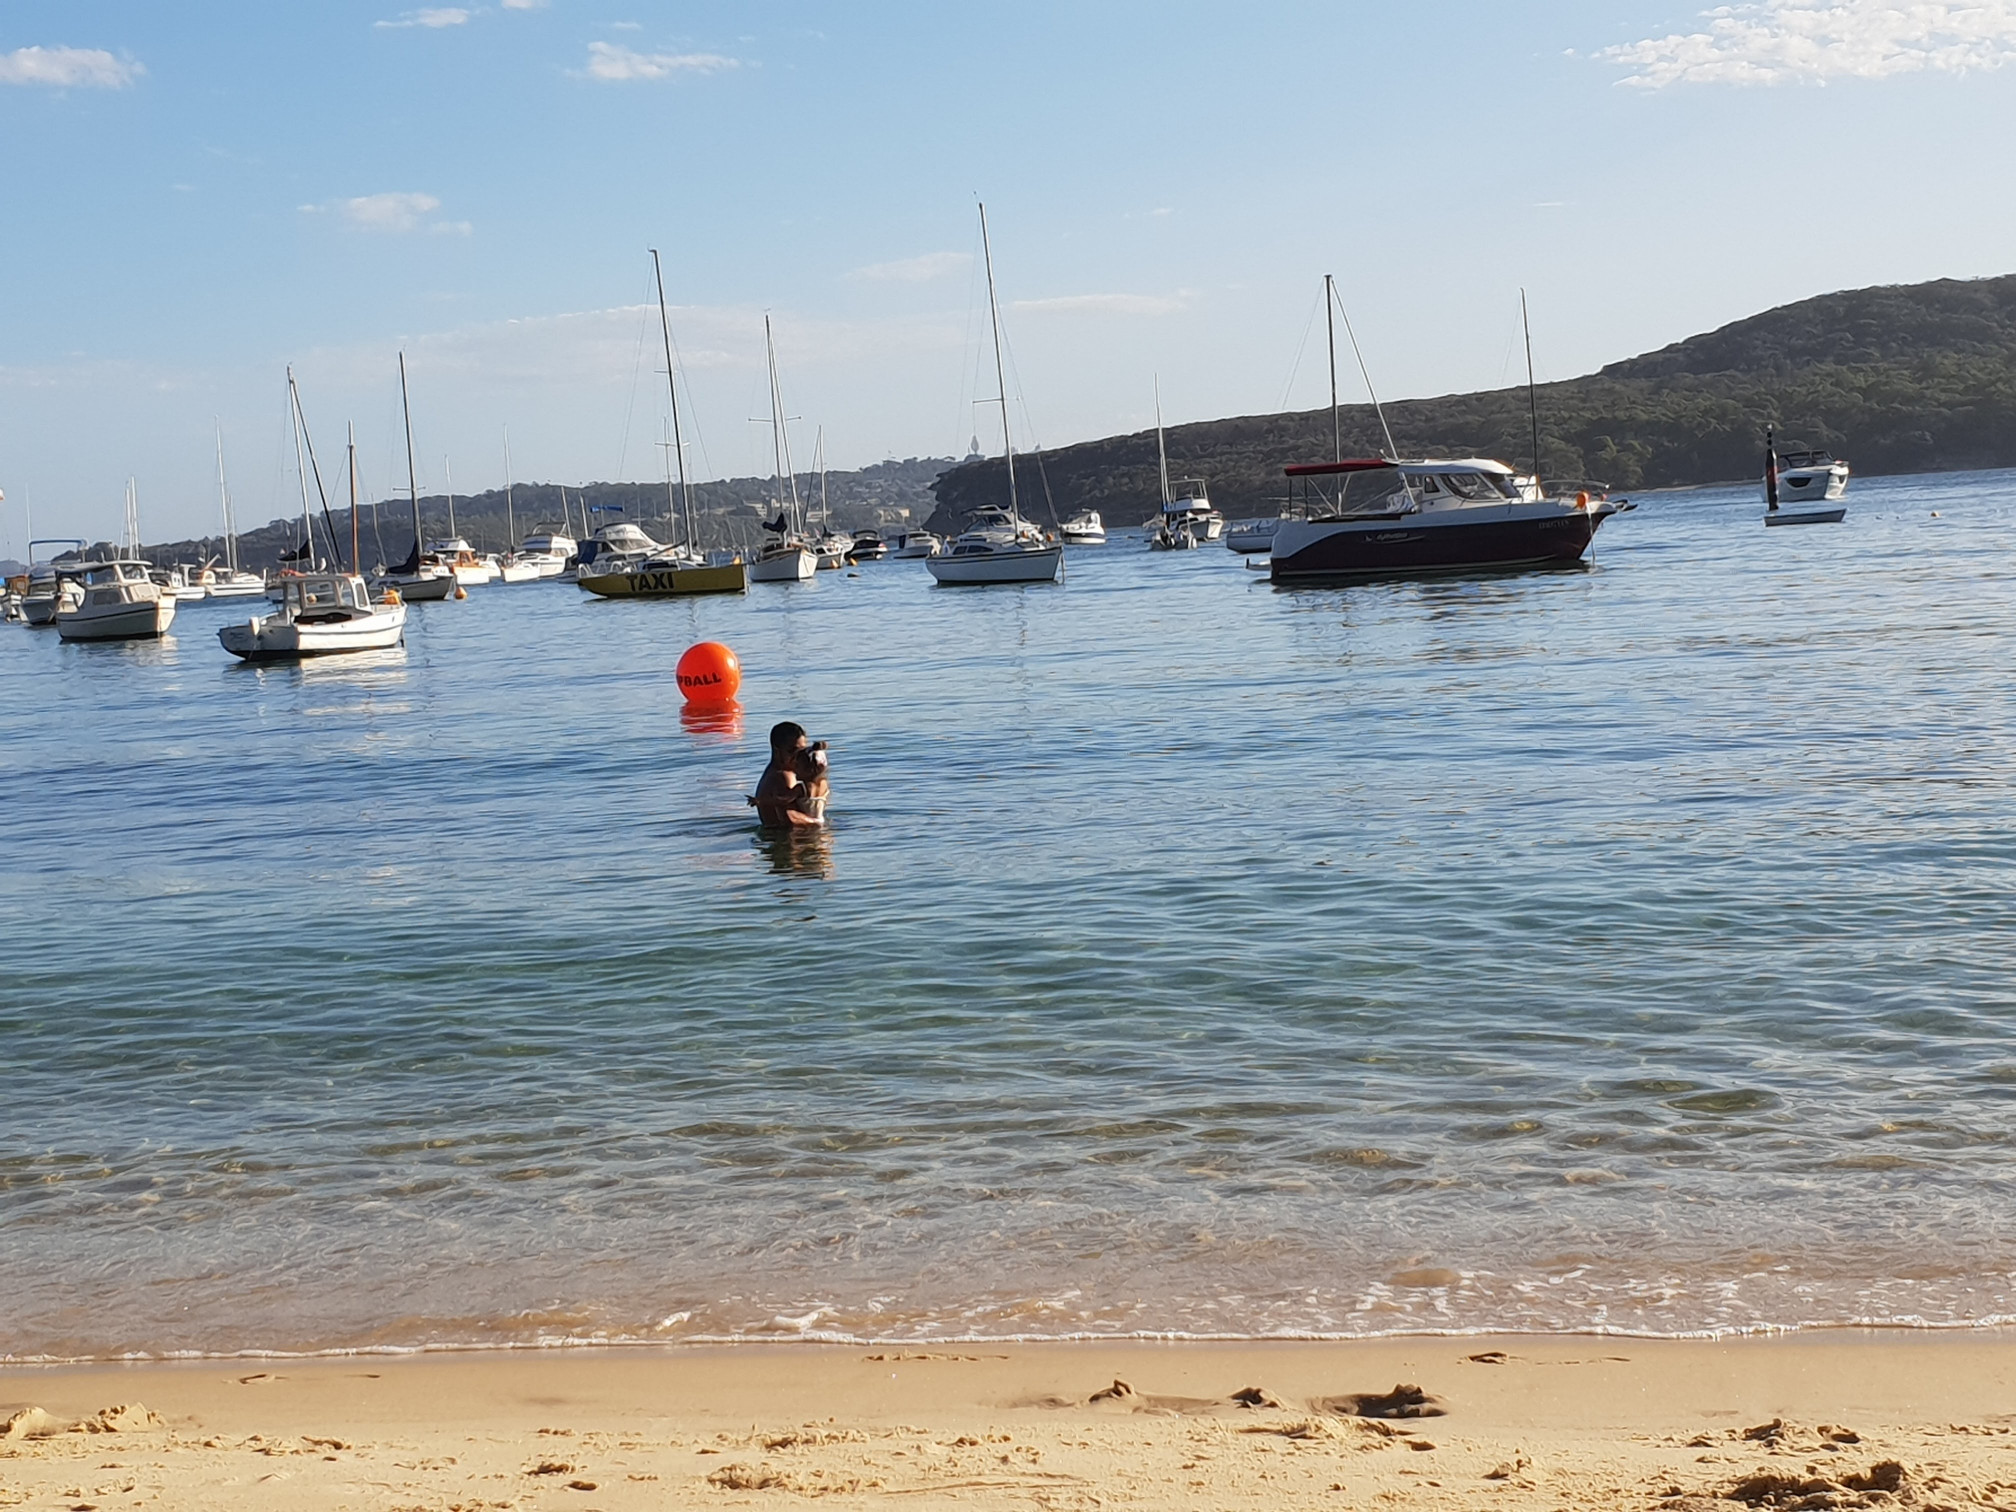 Enjoying the shallow waters of Little Manly Cove